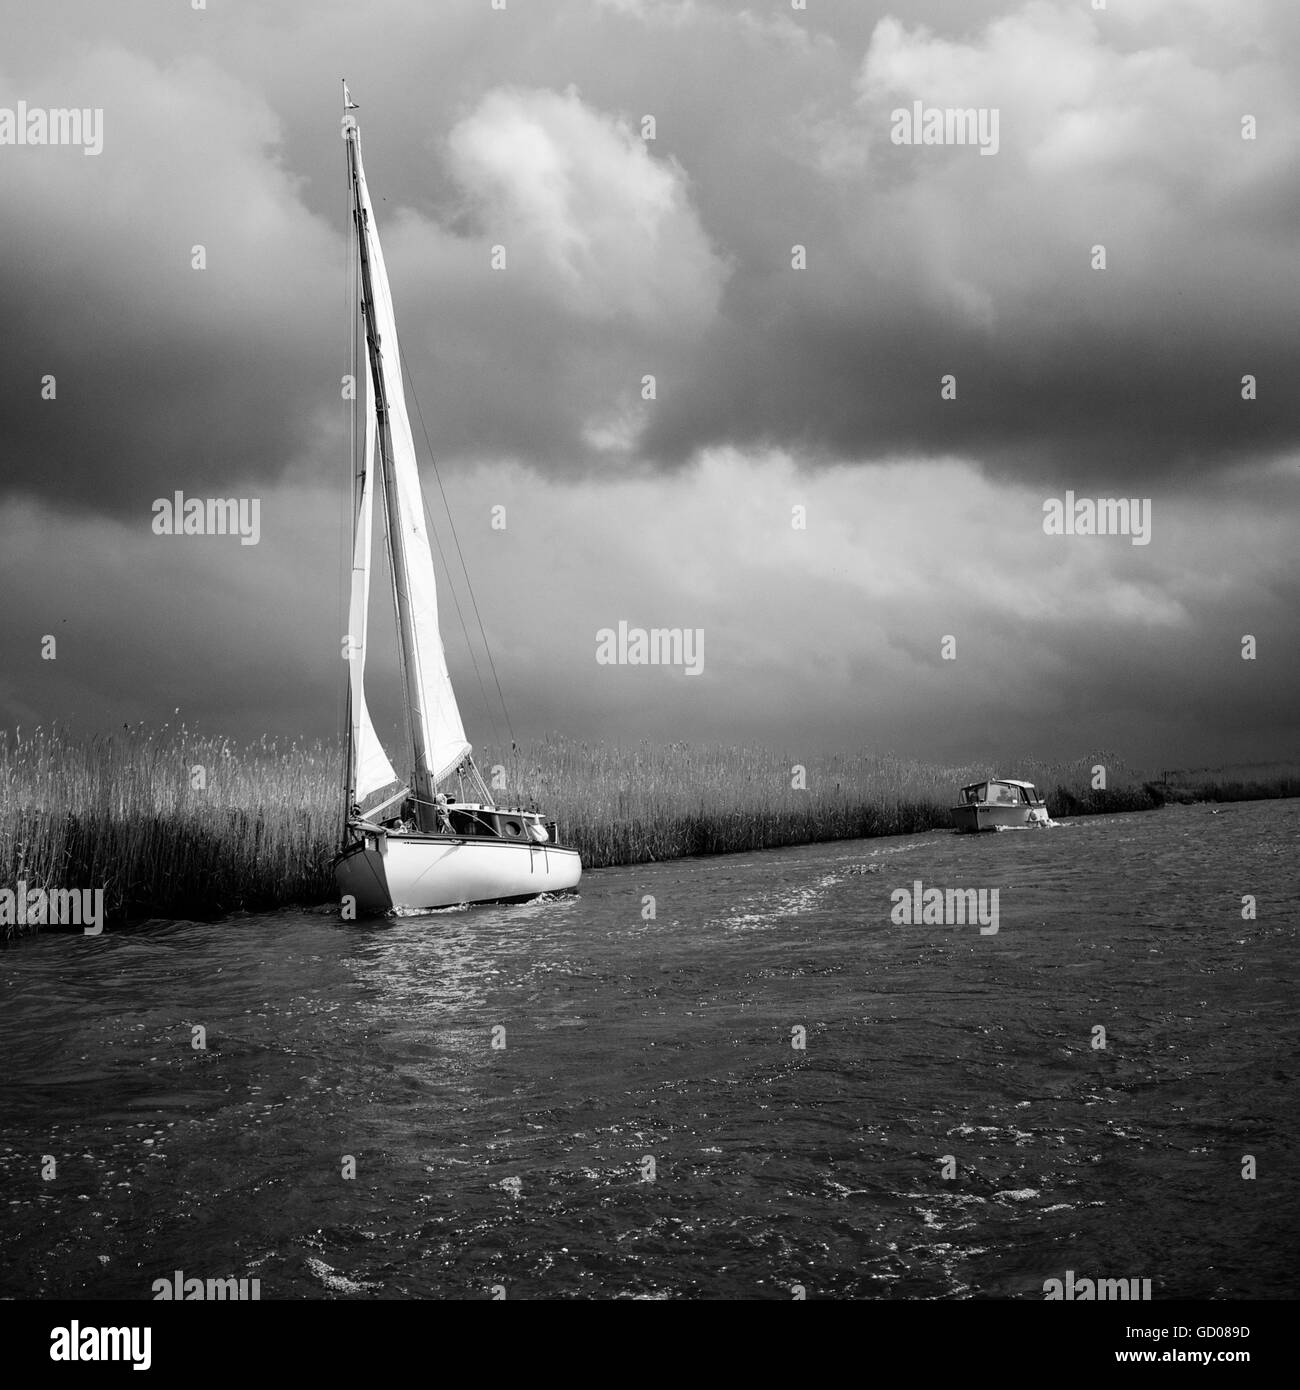 Sailing boat on the Norfolk Broads - Stock Image